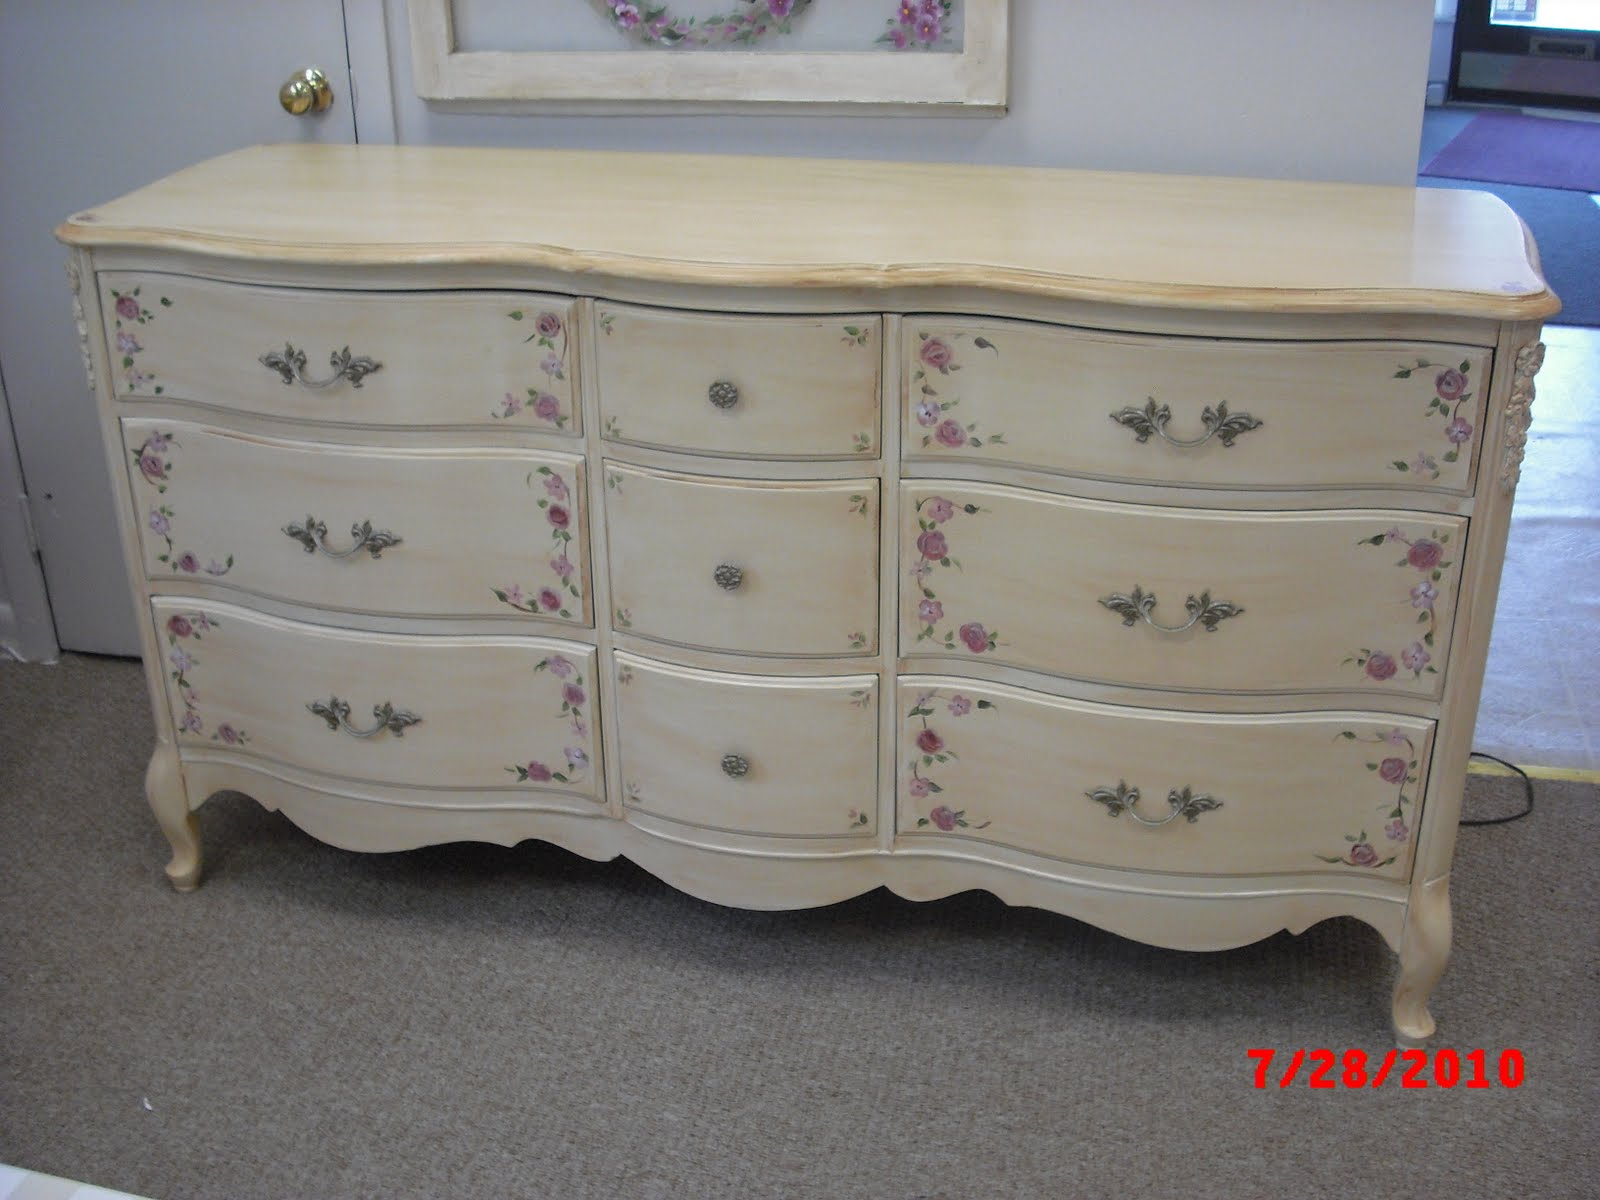 Painted french provincial furniture modern diy art for Furniture in french